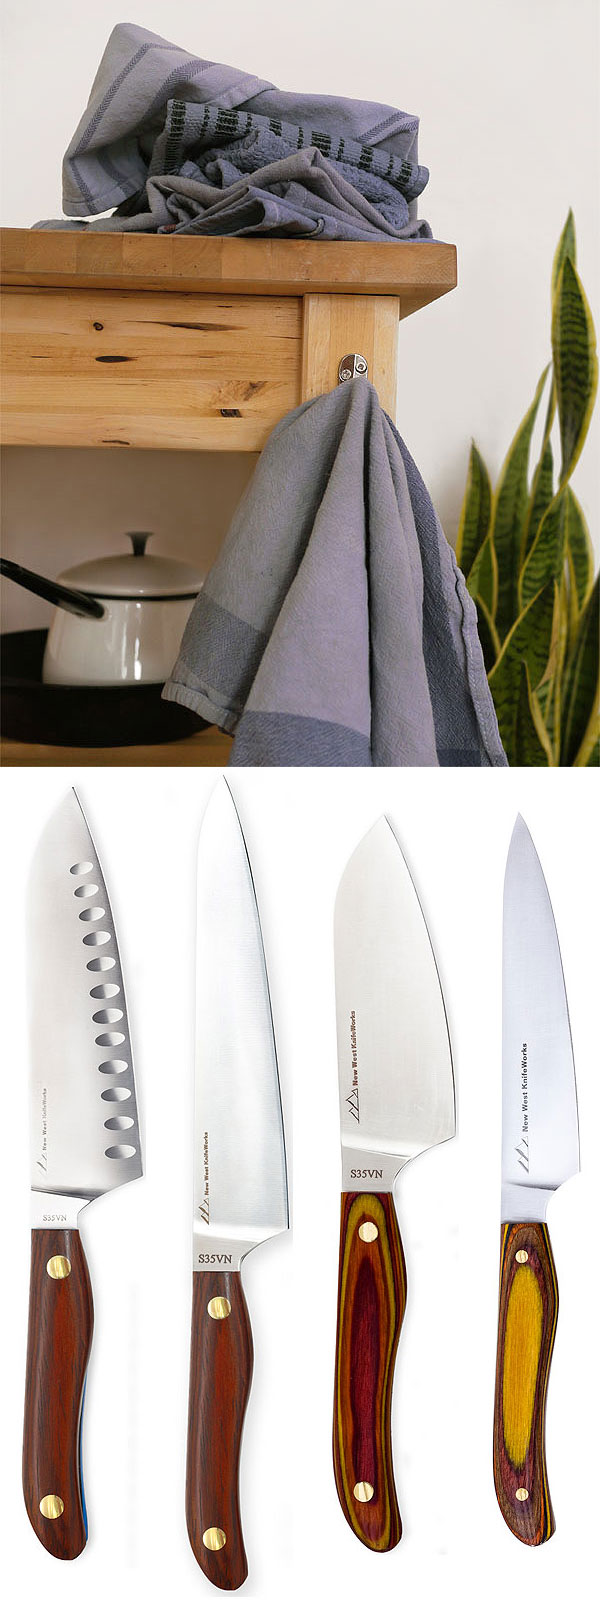 New life for stained kitchen linens…And this 4-piece knife giveaway!, Honest Fare by Gabrielle Arnold